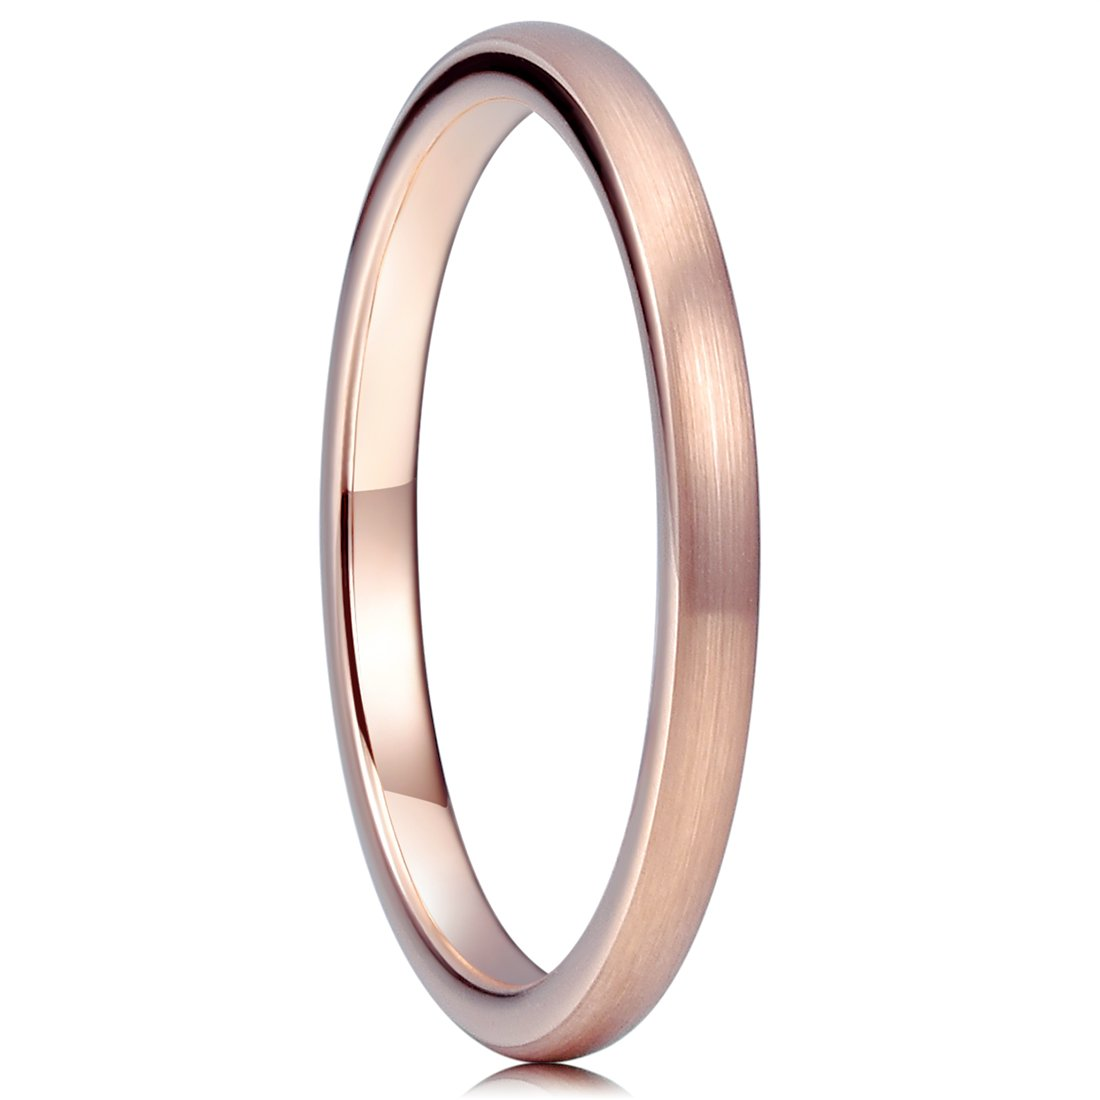 Three Keys Jewelry 2mm Tungsten Carbide Wedding Ring for Women Plated Rose Gold Wedding Band Engagement Ring Brushed Comfort Fit Size 6.5